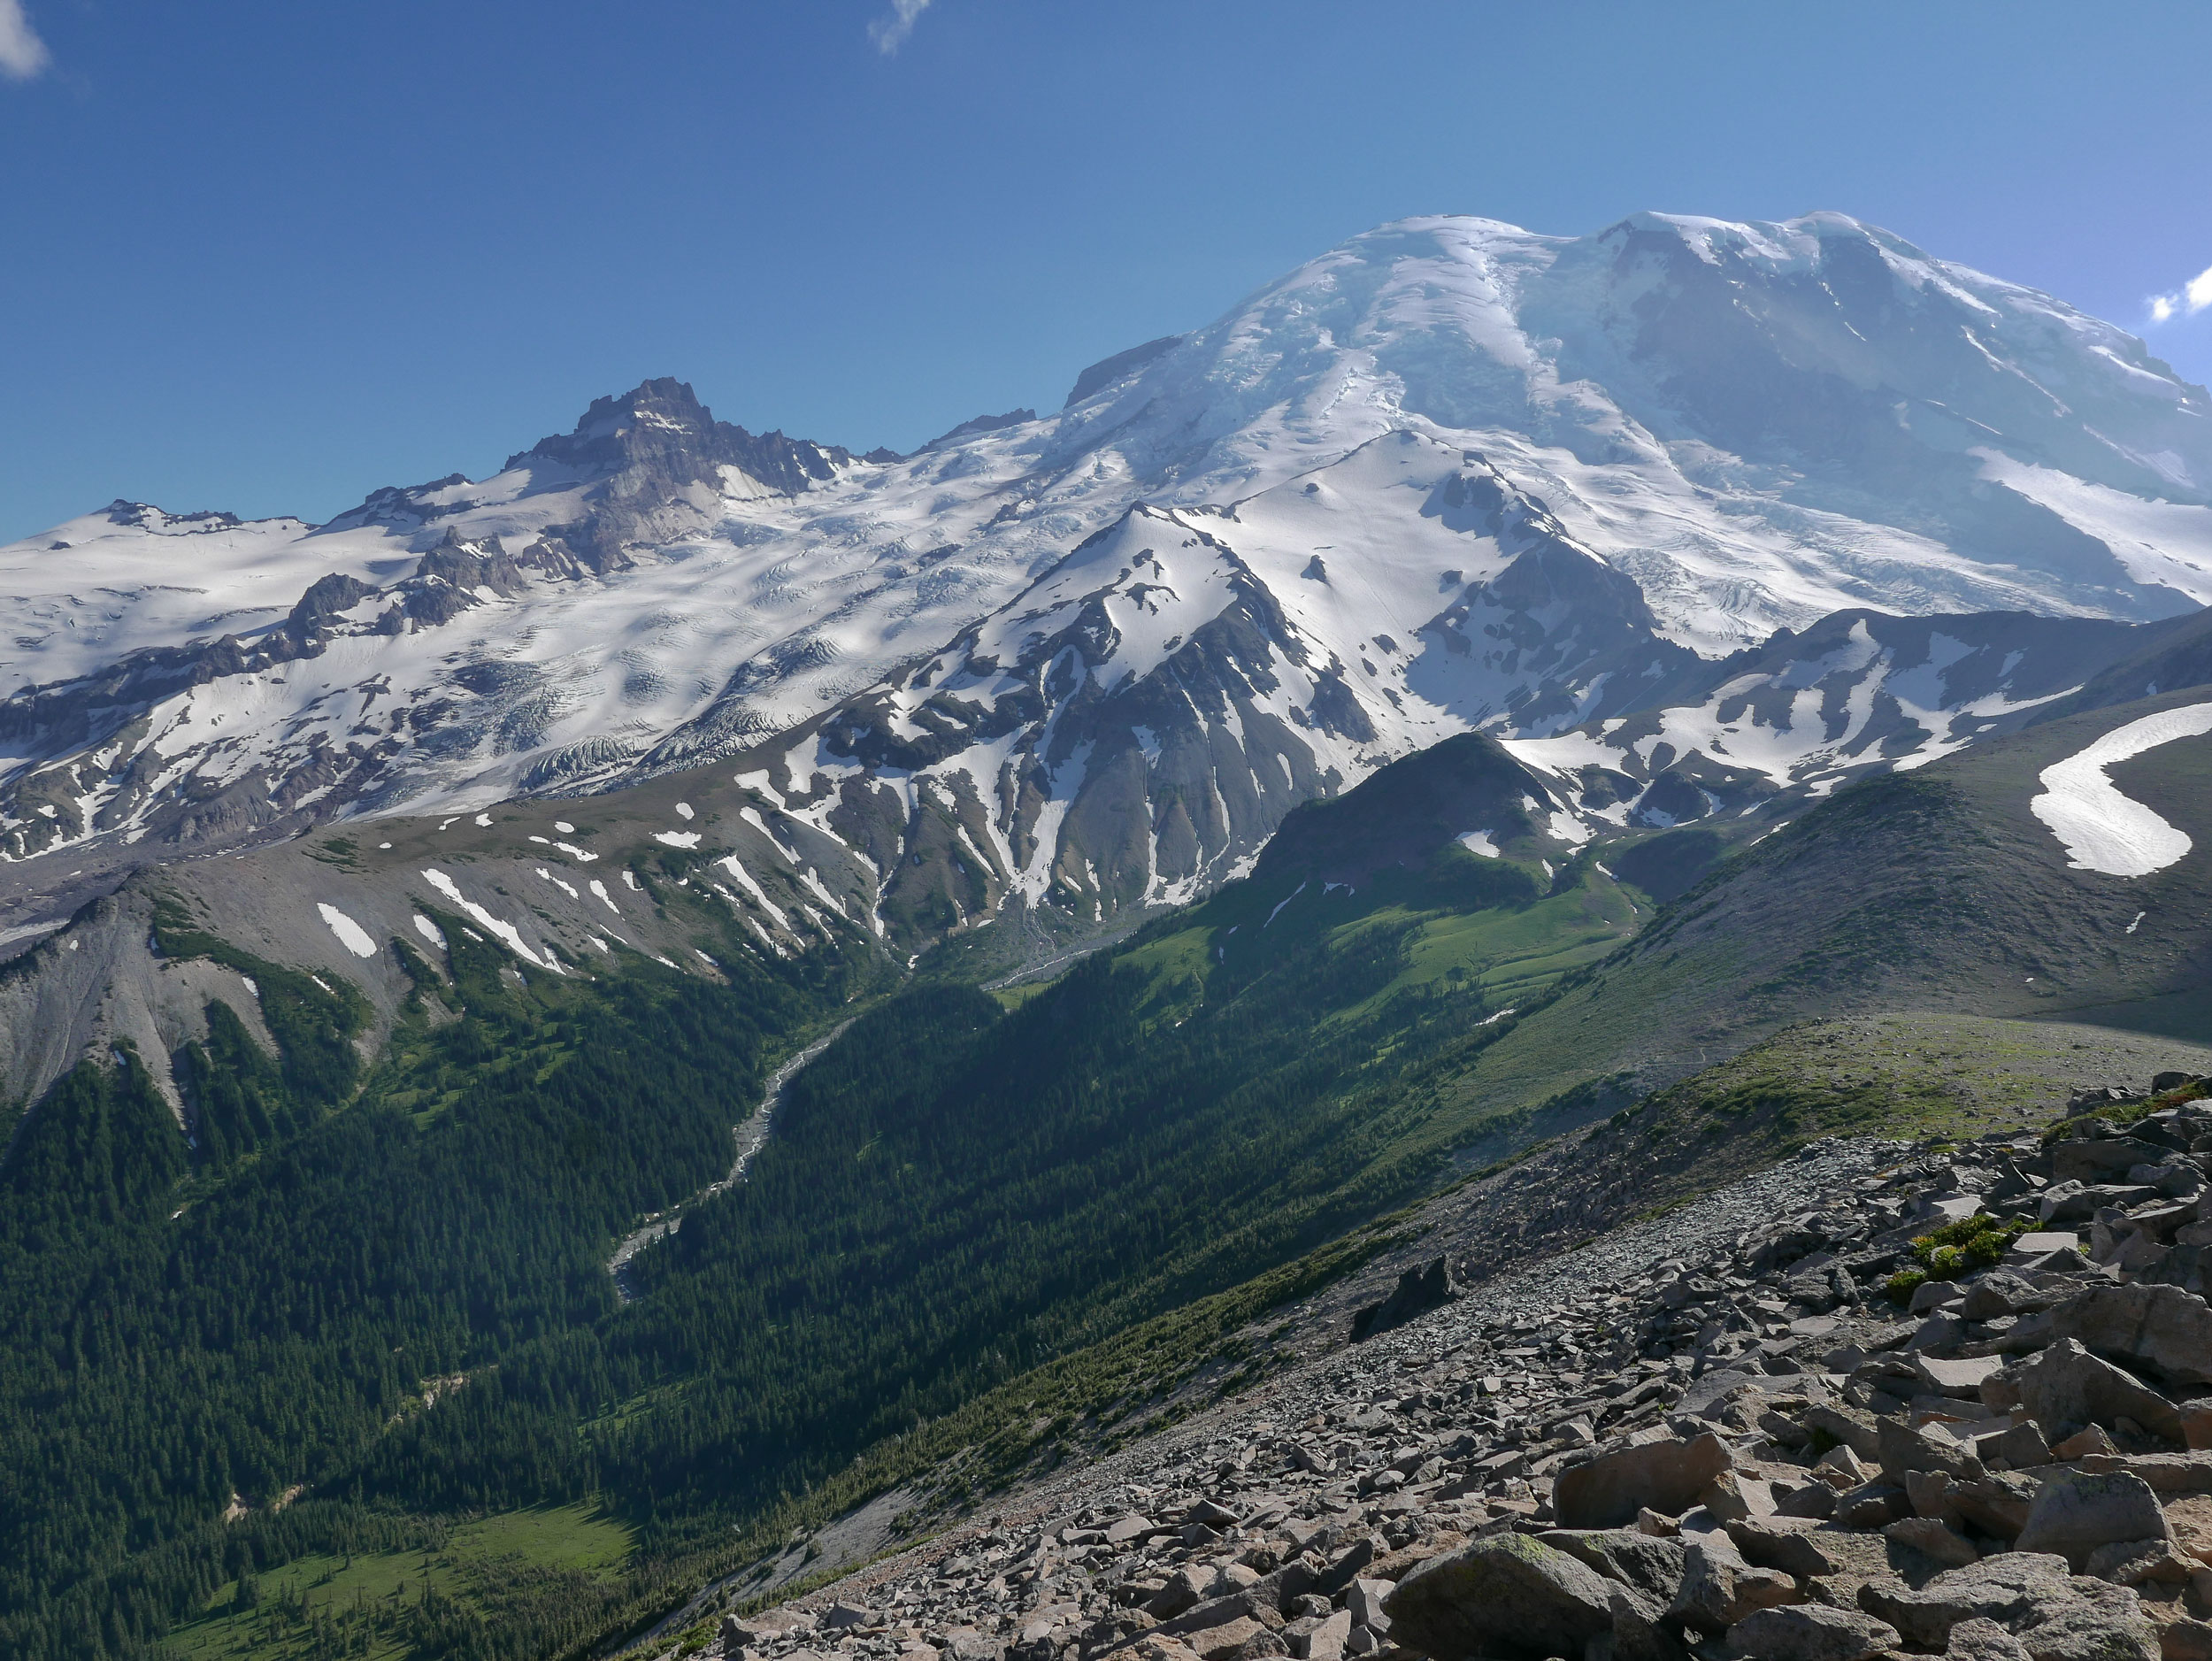 Little Tahoma Peak and Mount Rainier from Second Burroughs around 5:30 PM on Tuesday, July 25.